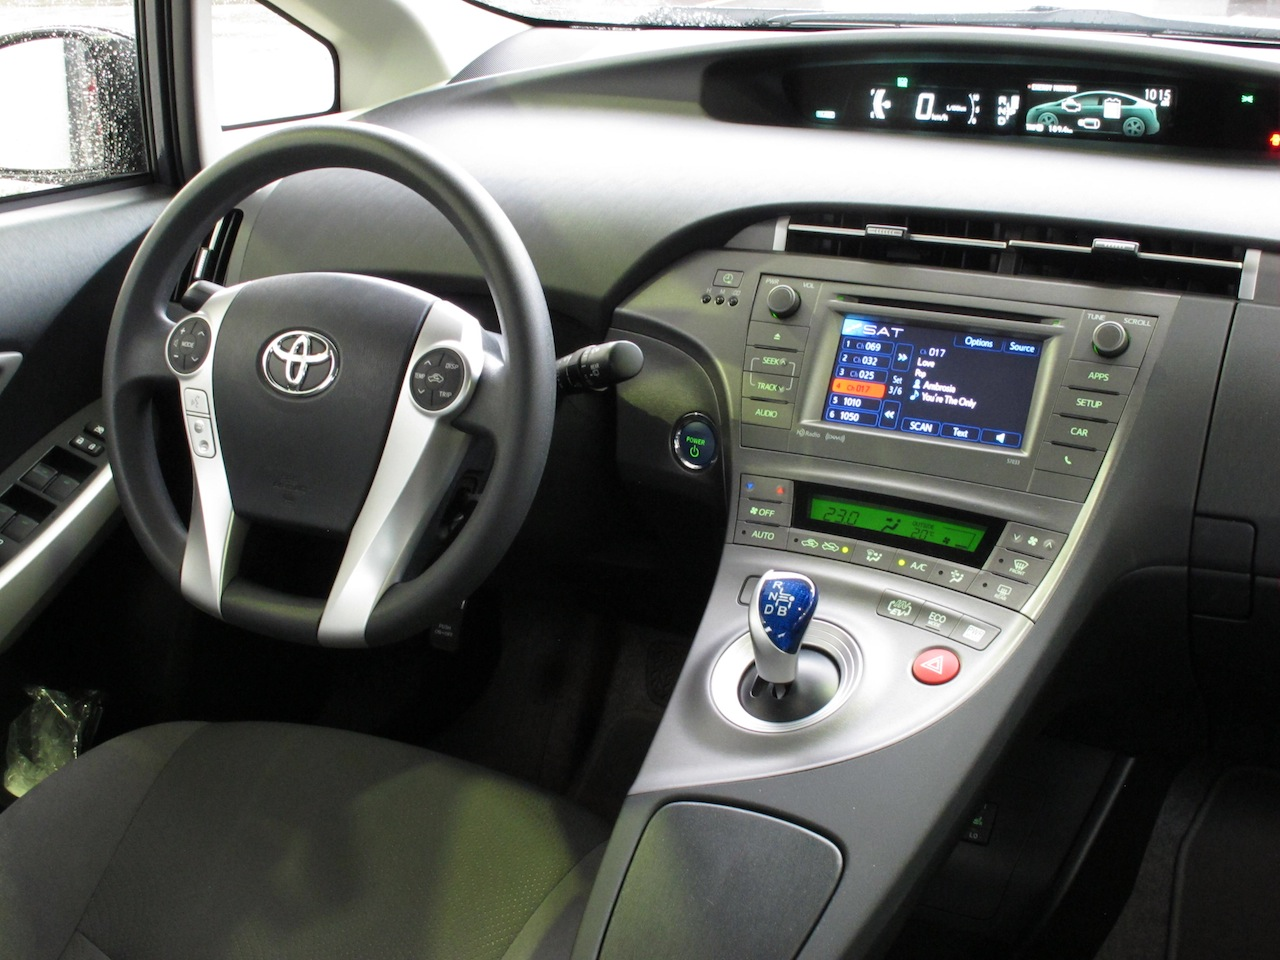 Comfy toyota prius 2016 interior for a smooth journey my car interior my car interior - Comfy interiors ...